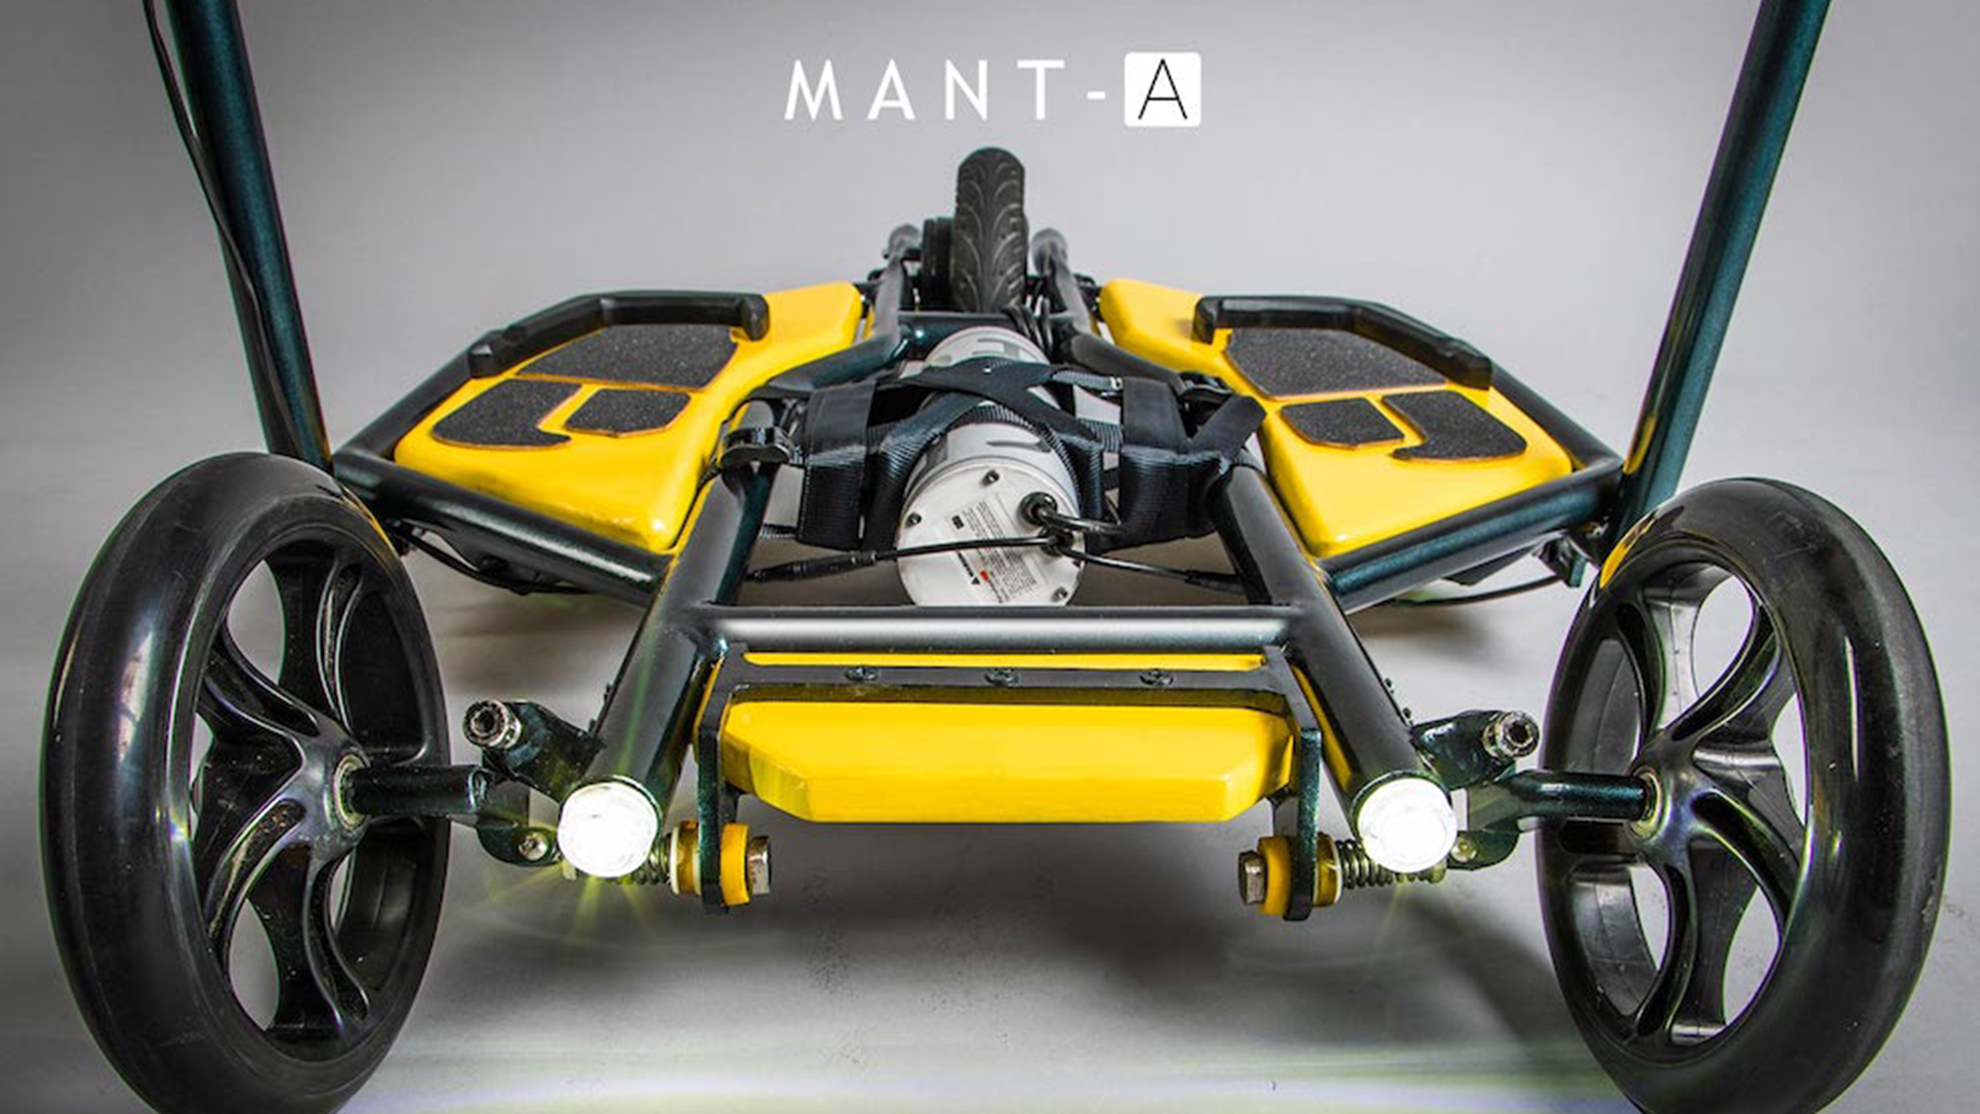 MANT-A electric motor assisted personal vehicle